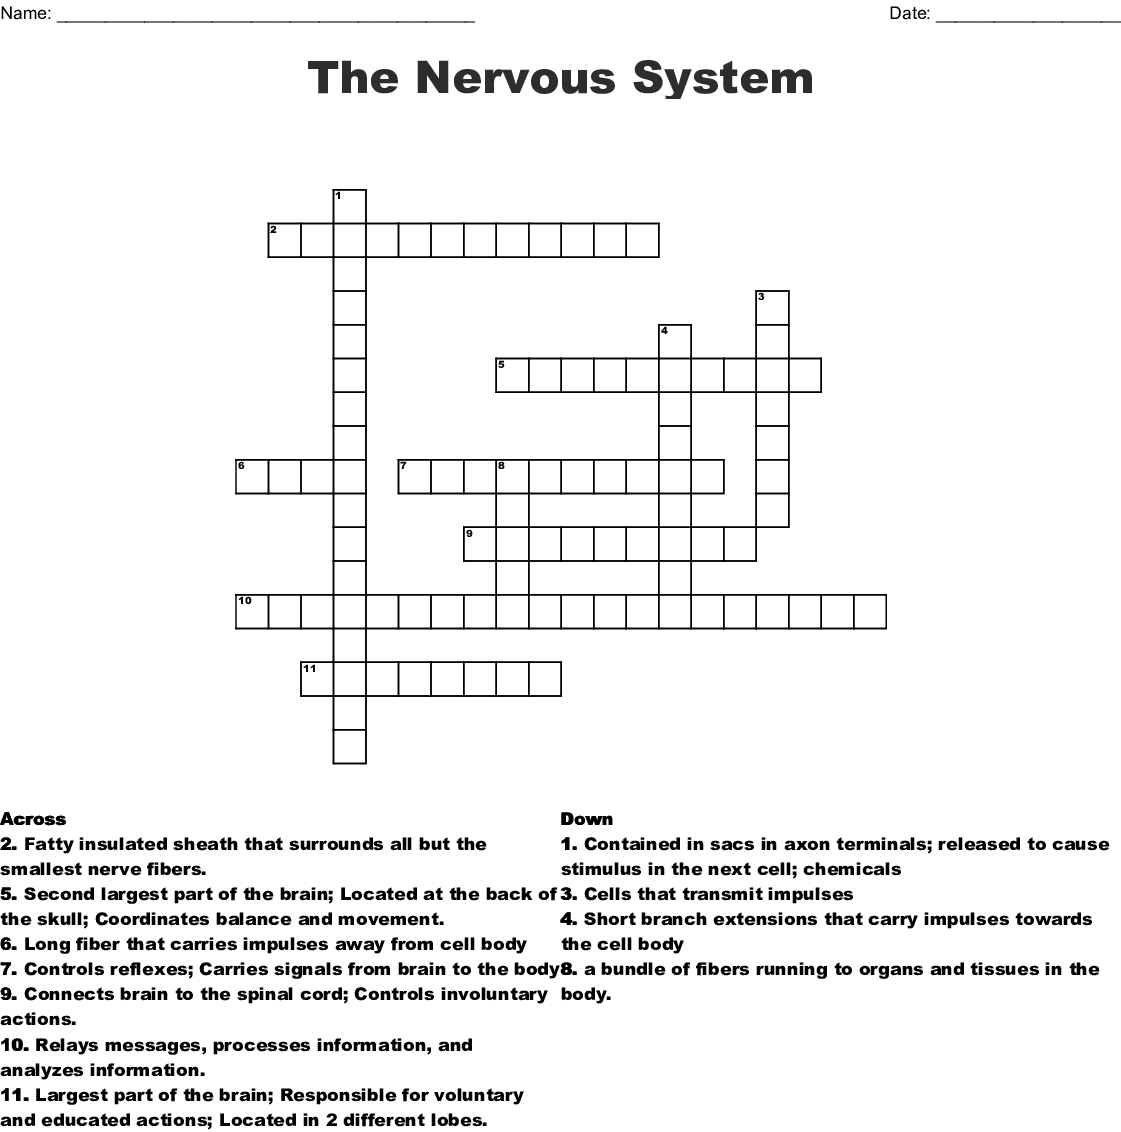 Biology Nervous System Crossword